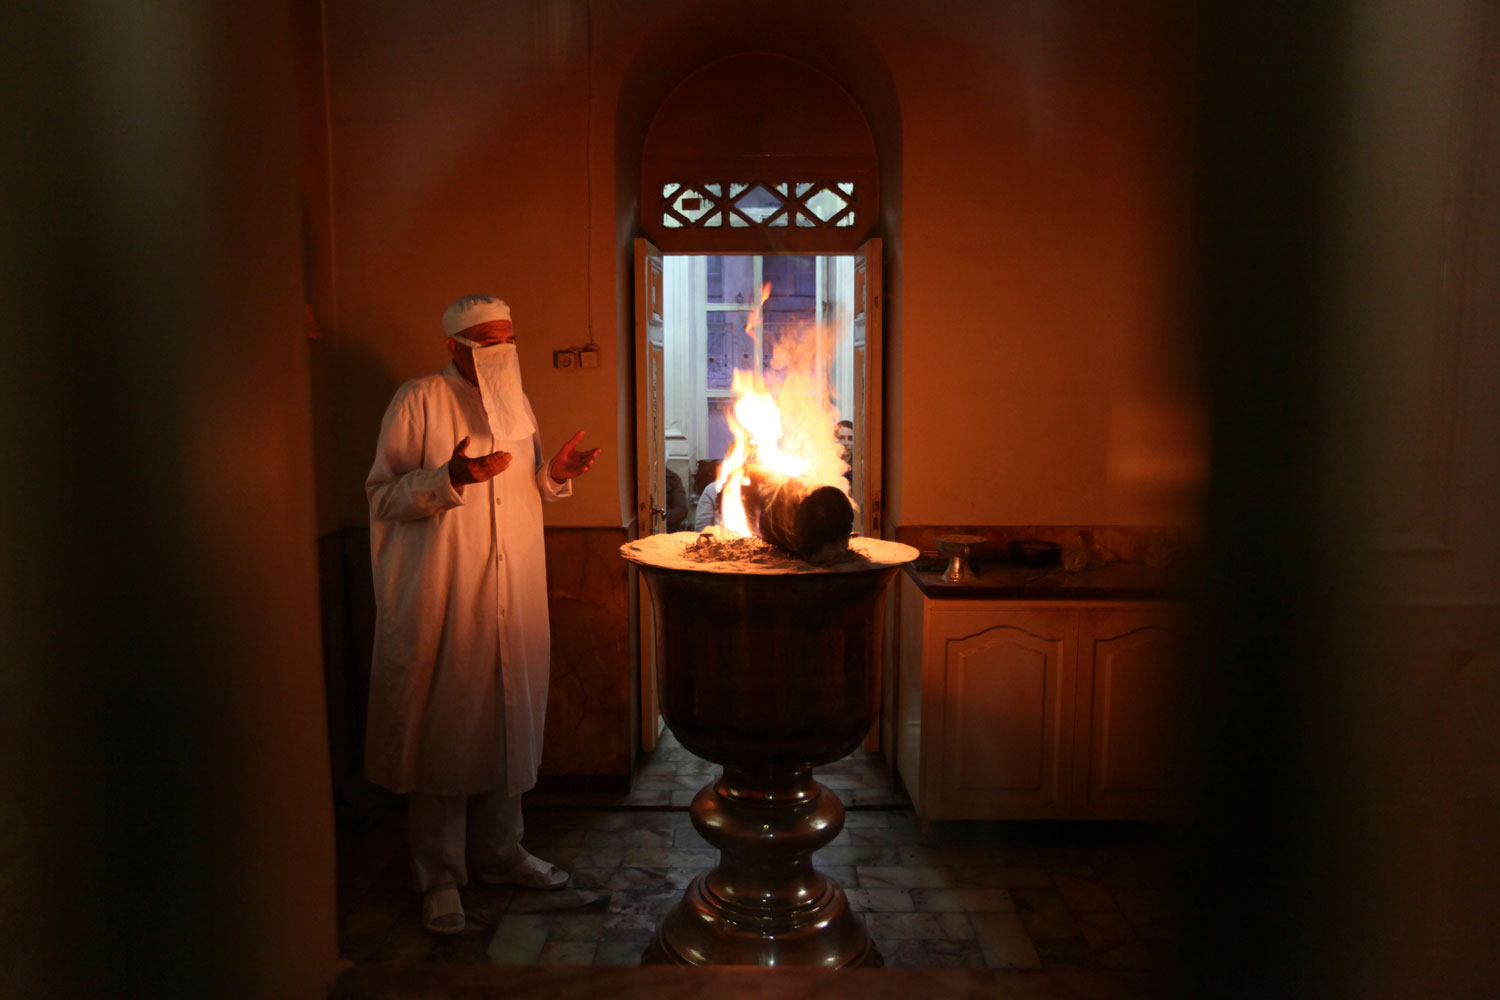 September 12, 2011. An Iranian Zoroastrian priest, performs a ritual at a fire temple in Tehran, Iran. Zoroastrians are recognized in the Iranian constitution as religious minorities who have their own lawmaker in parliament. Zoroastrianism lost dominance in Iran after Muslim Arabs conquered Persia in the 7th century.